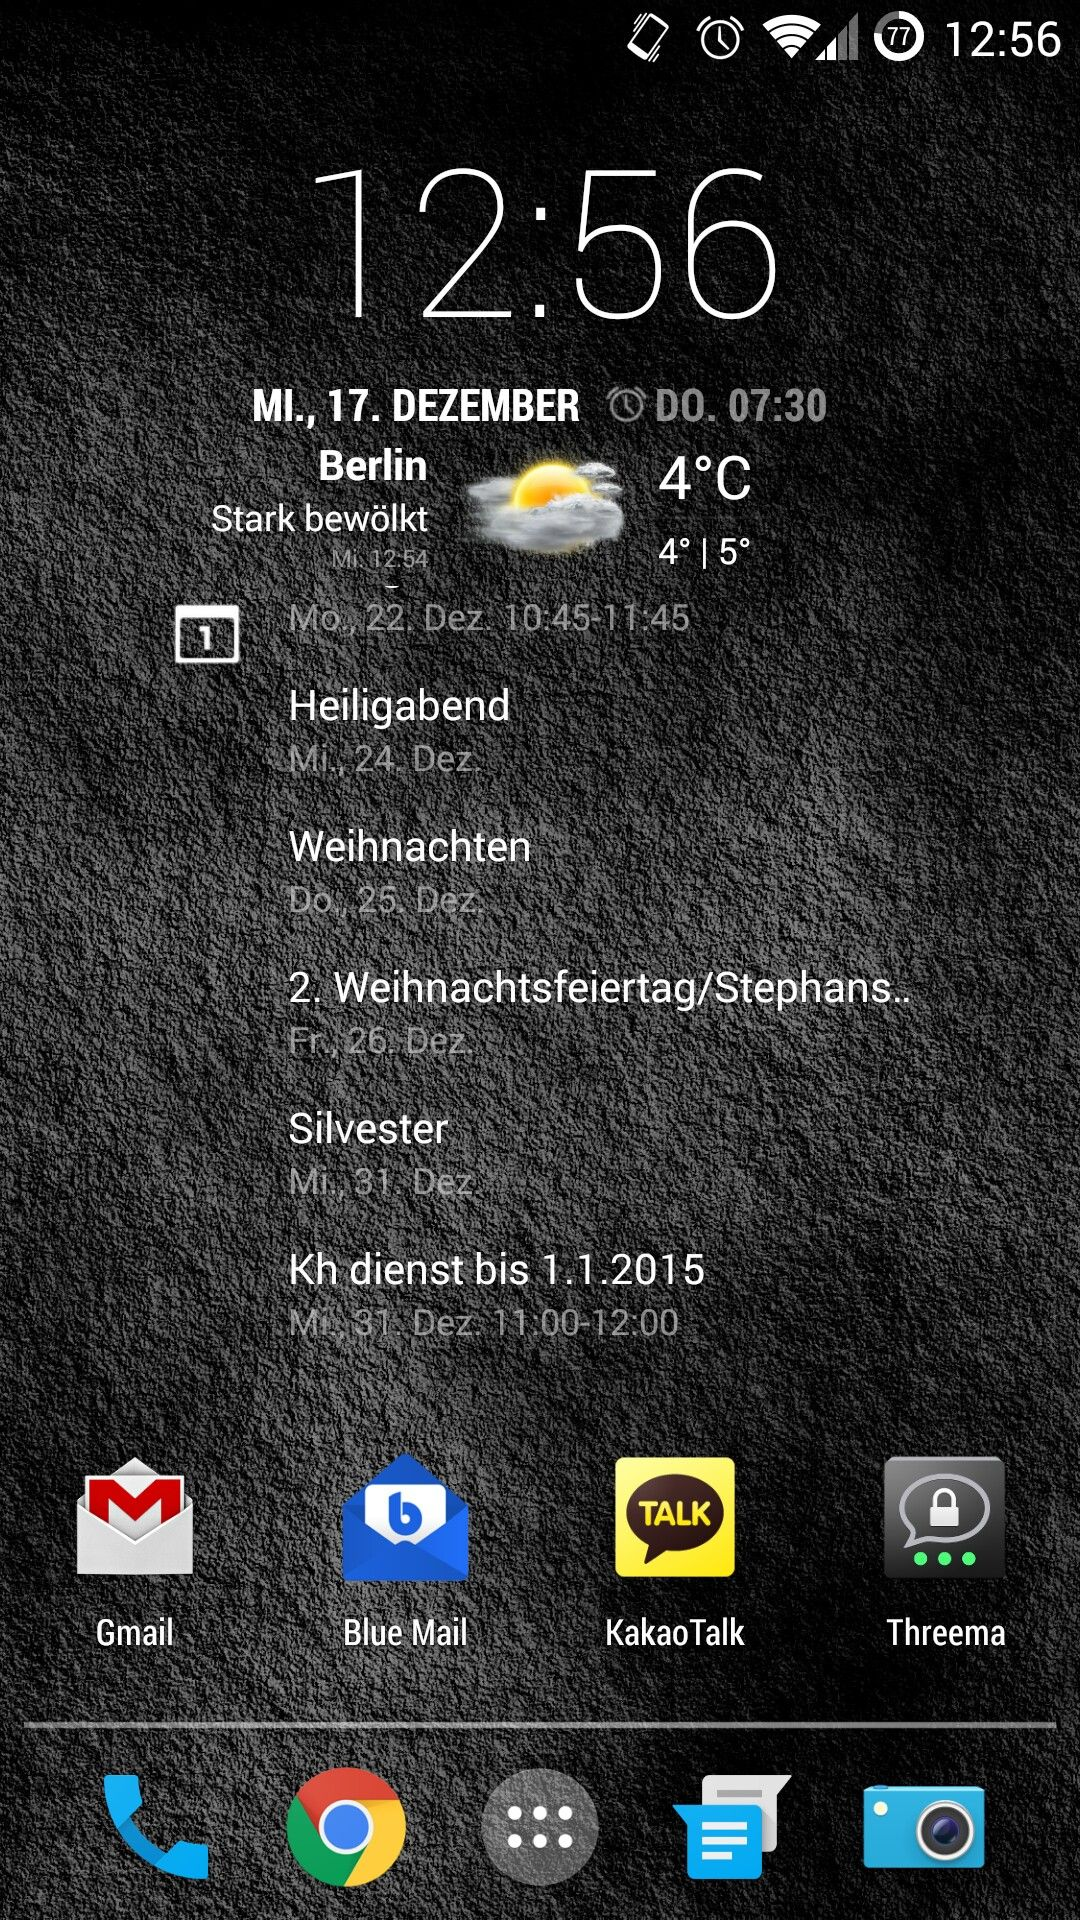 Screenshot_2014-12-17-12-56-06~2.jpg